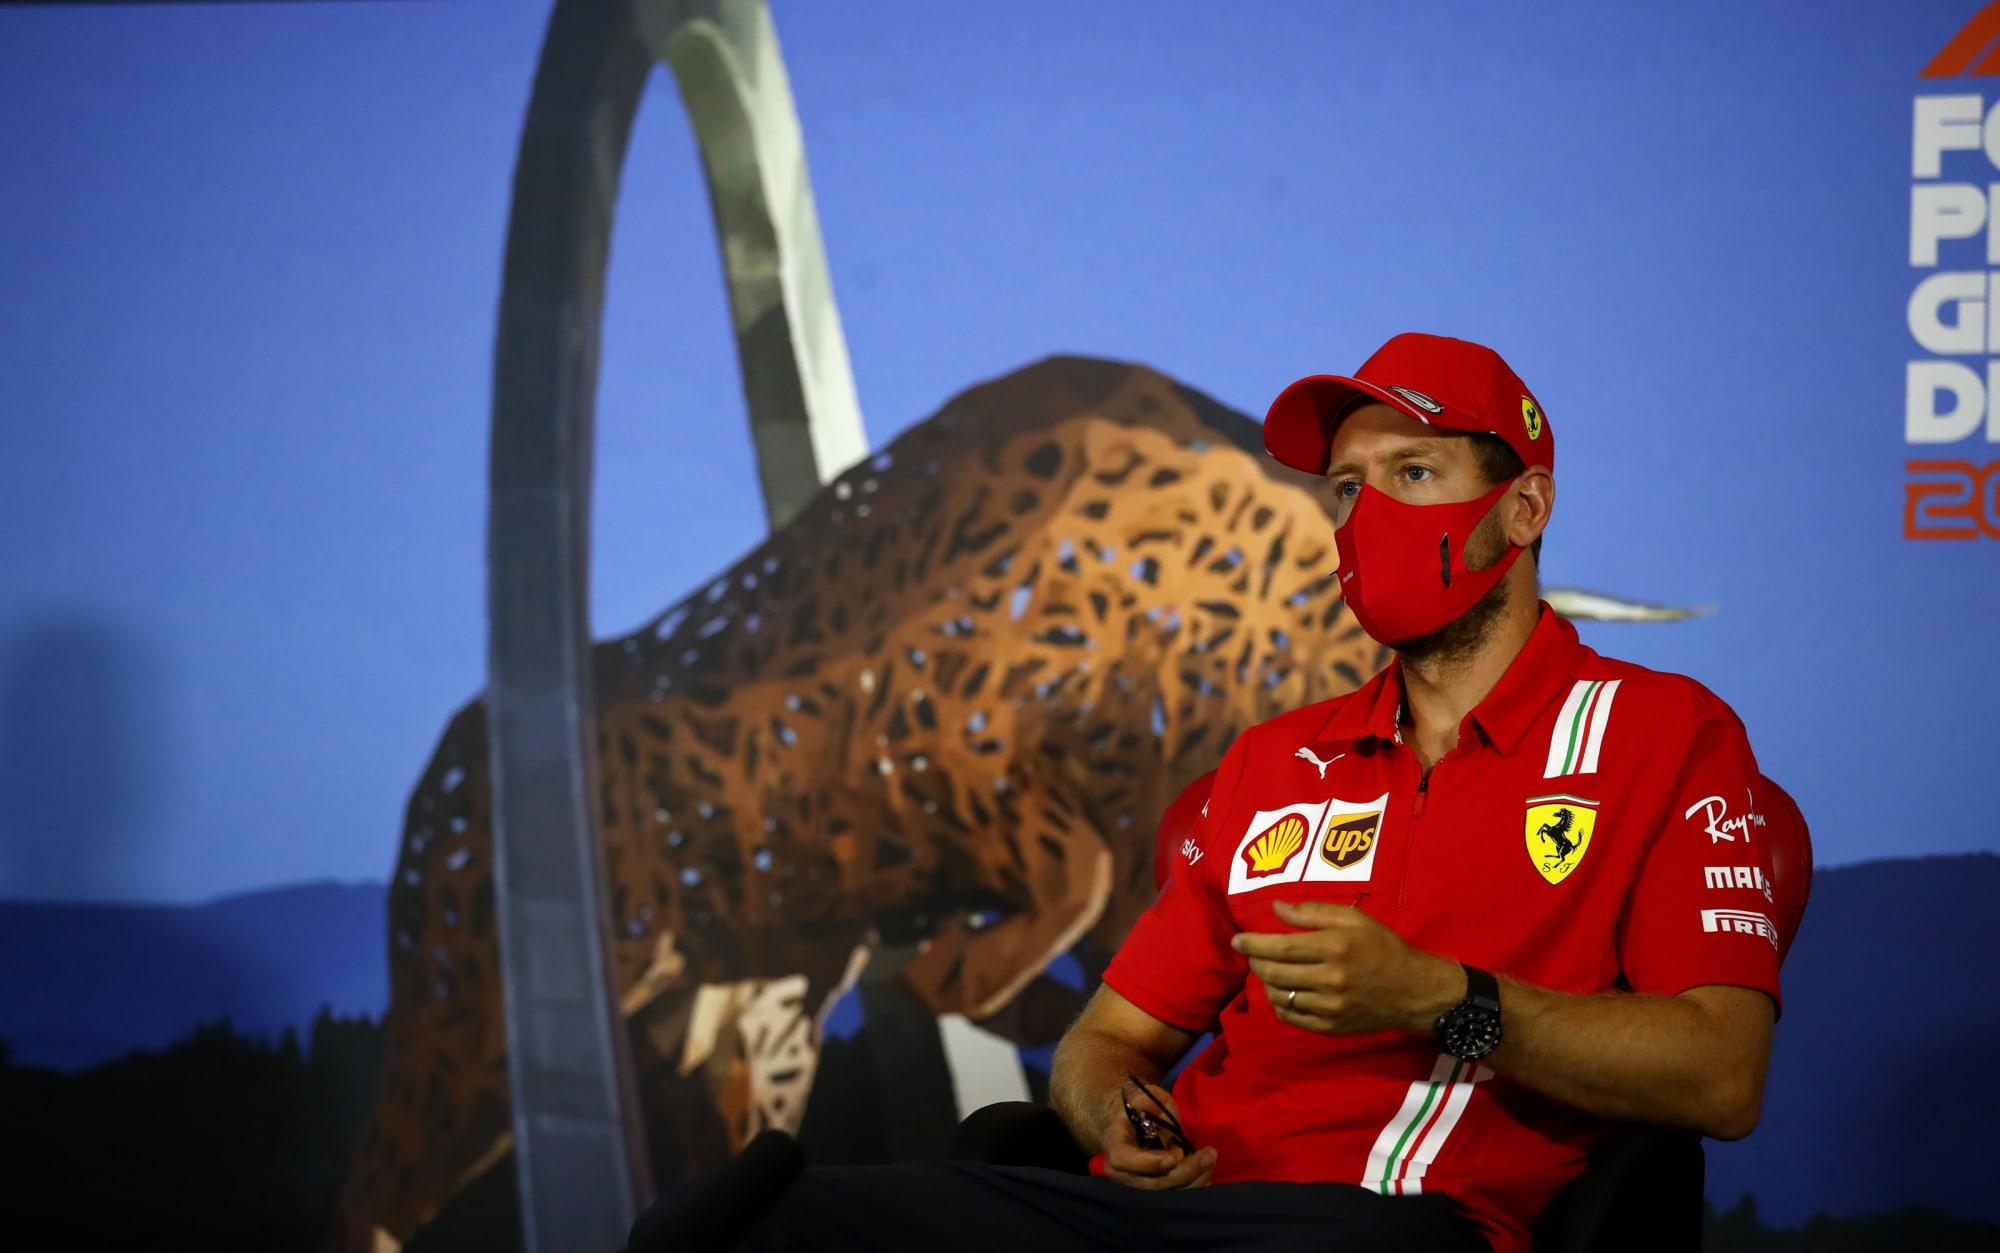 Formula 1: Sebastian Vettel is the new Fernando Alonso, and it may be worse